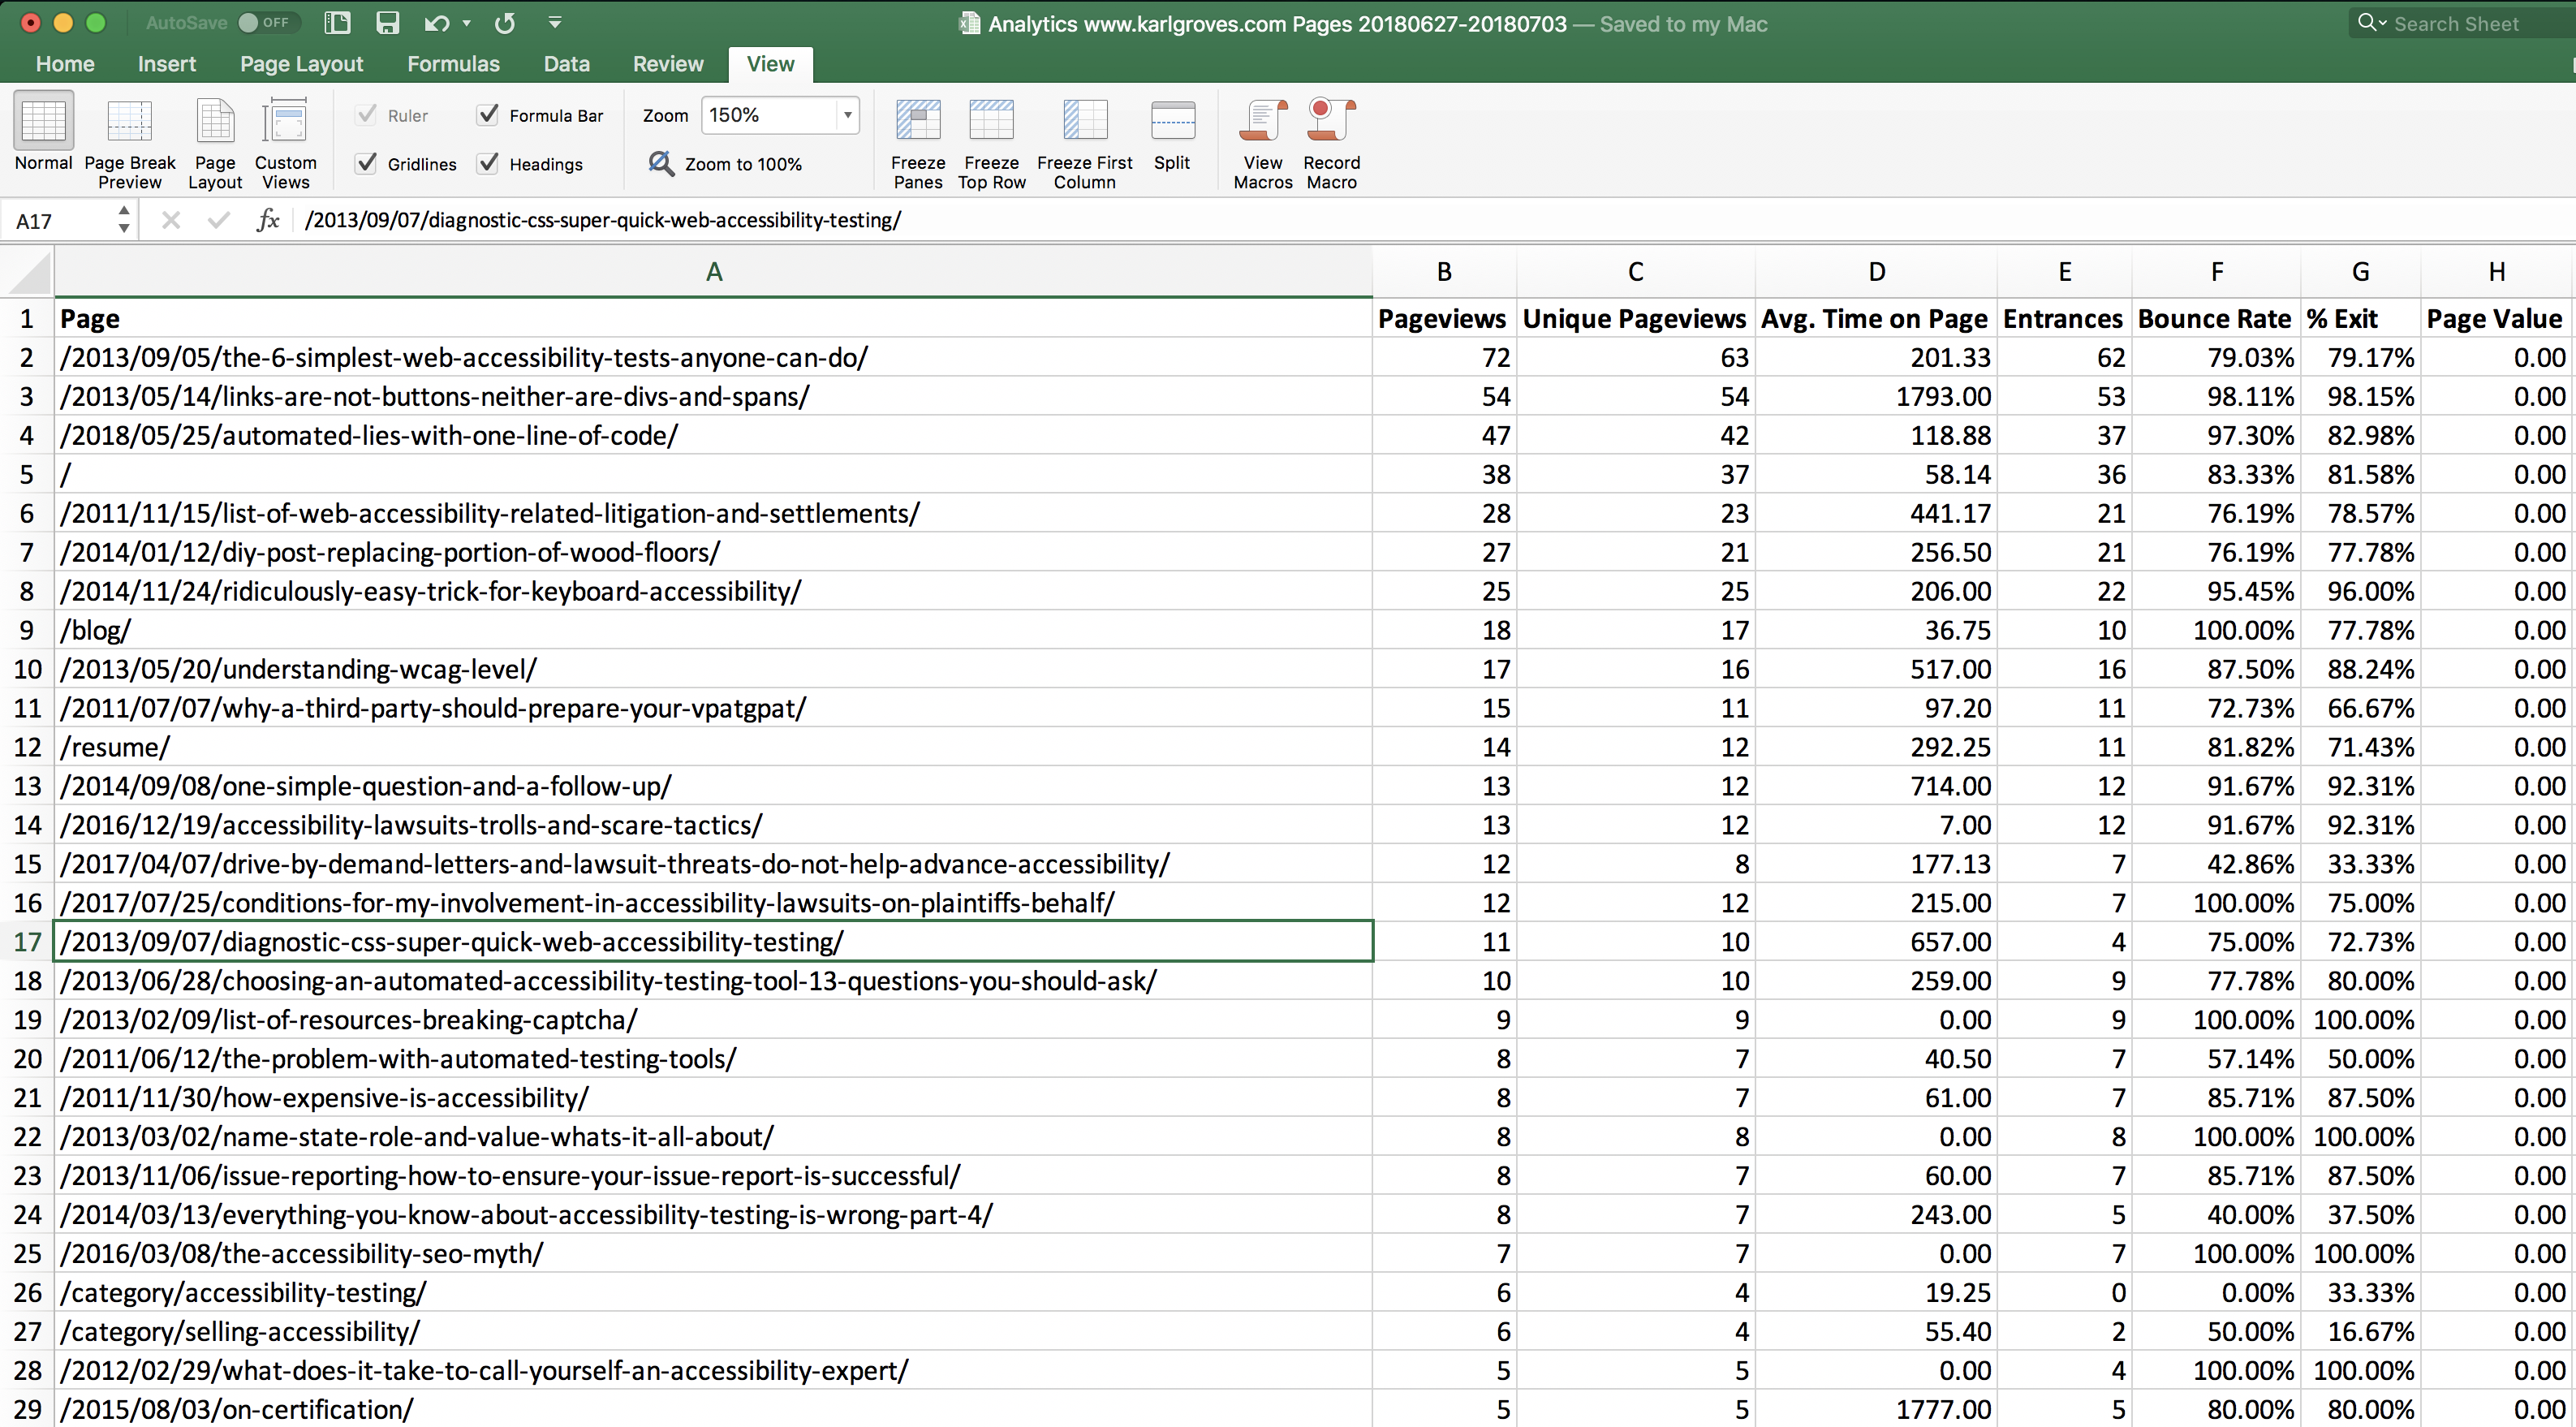 Screenshot of Excel view of the data